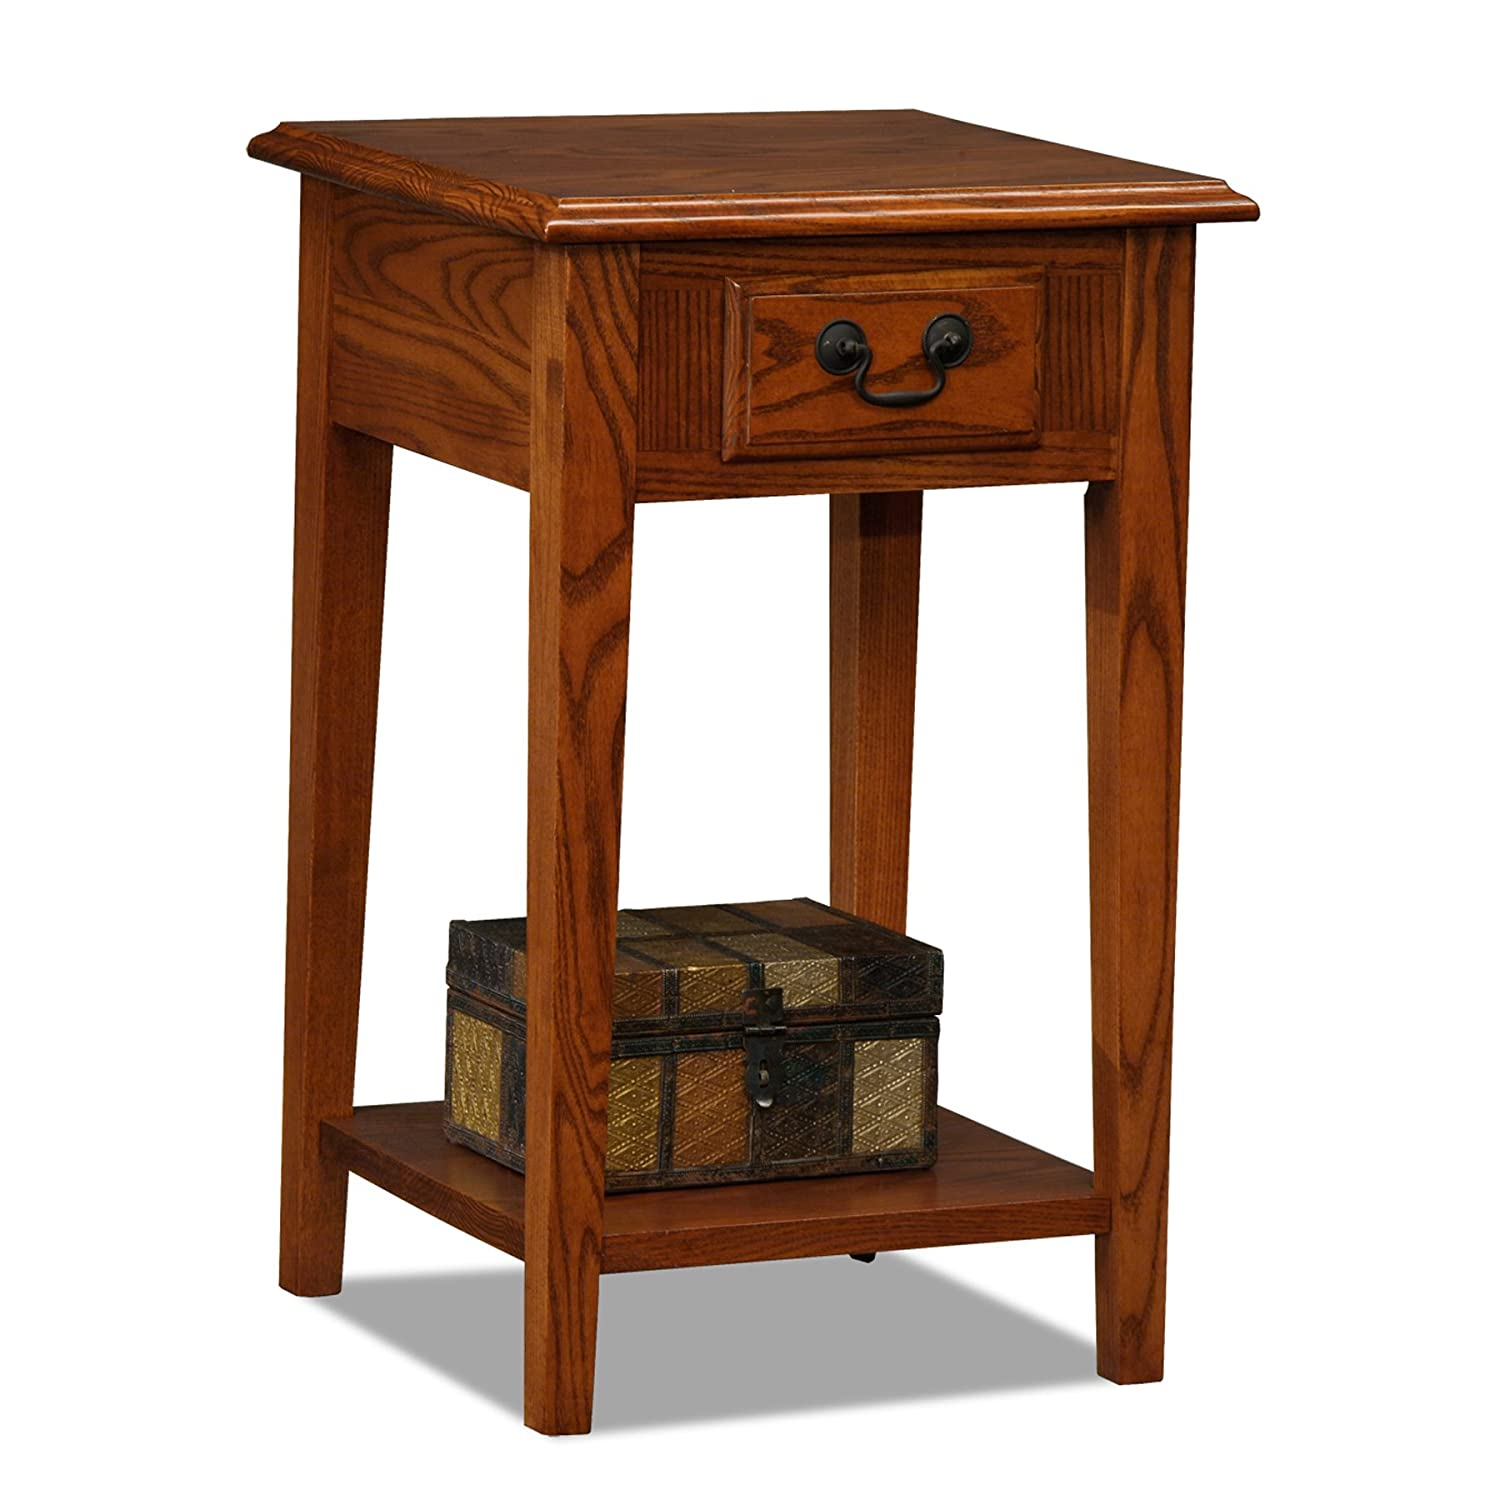 Leick Recliner Wedge End Table, Medium Oak Leick Furniture 9035MED